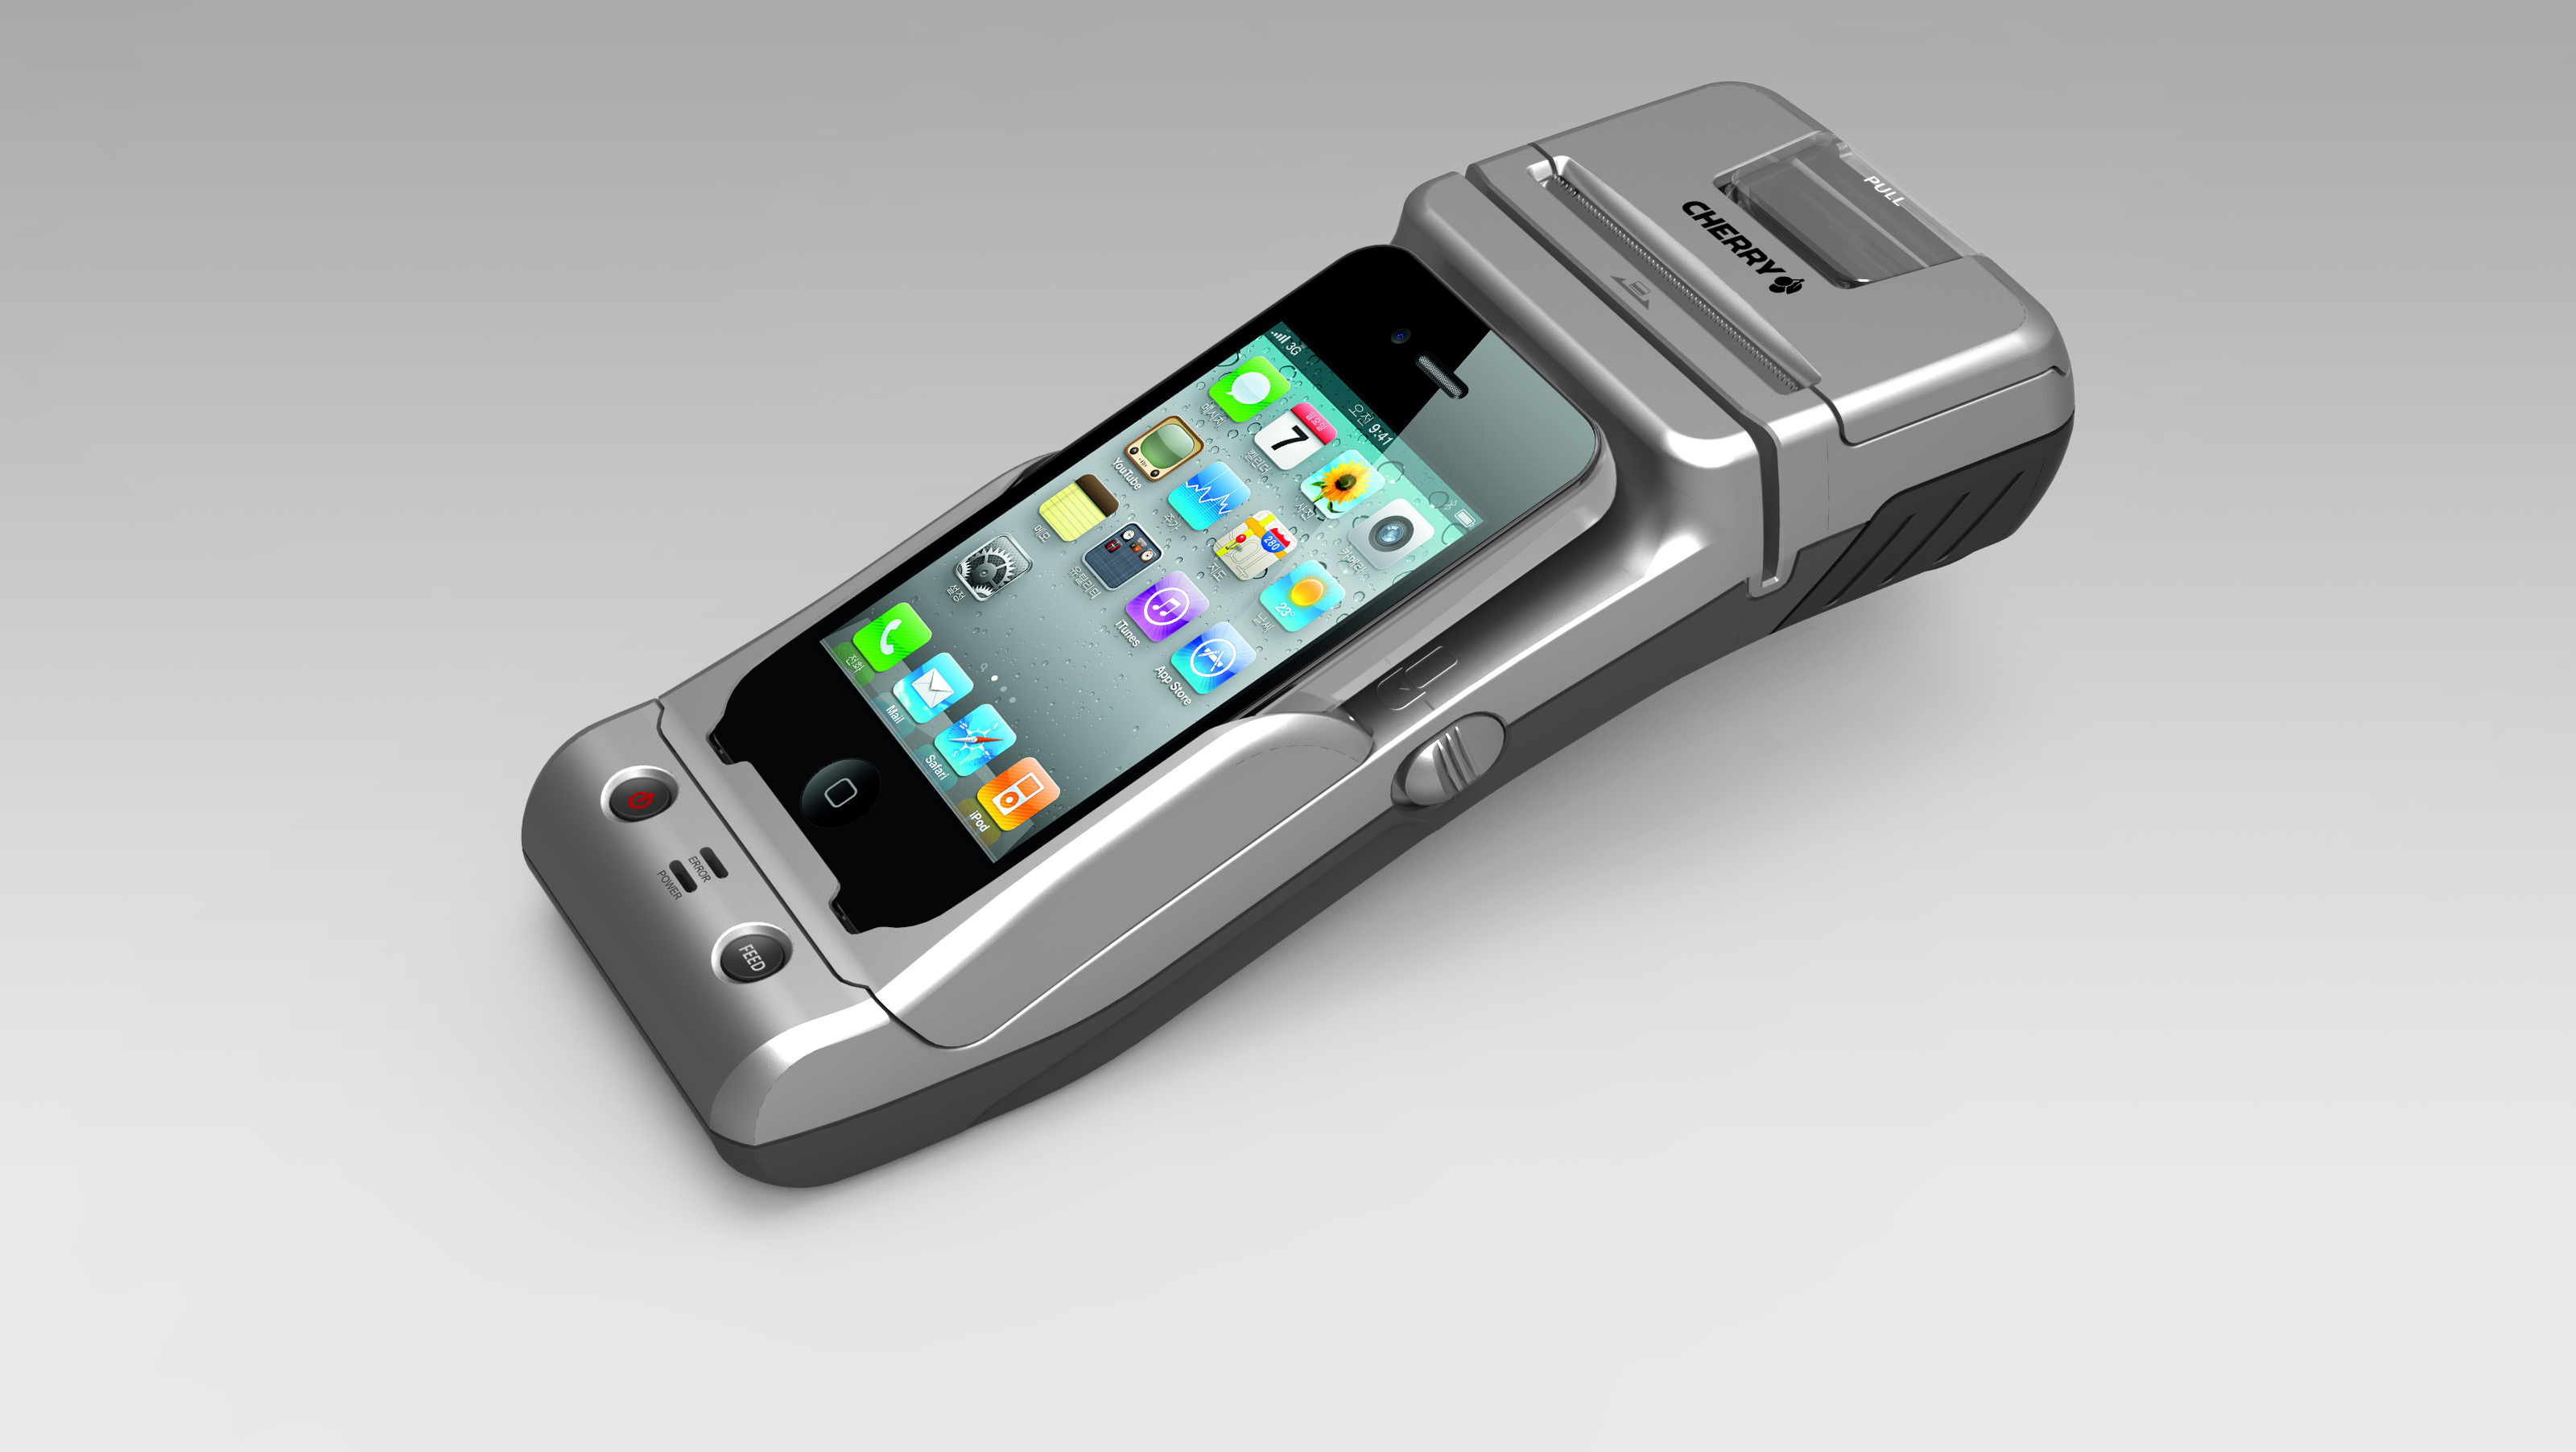 Cherry Introduces The Itransigo Mobile Point Of Sale Sled